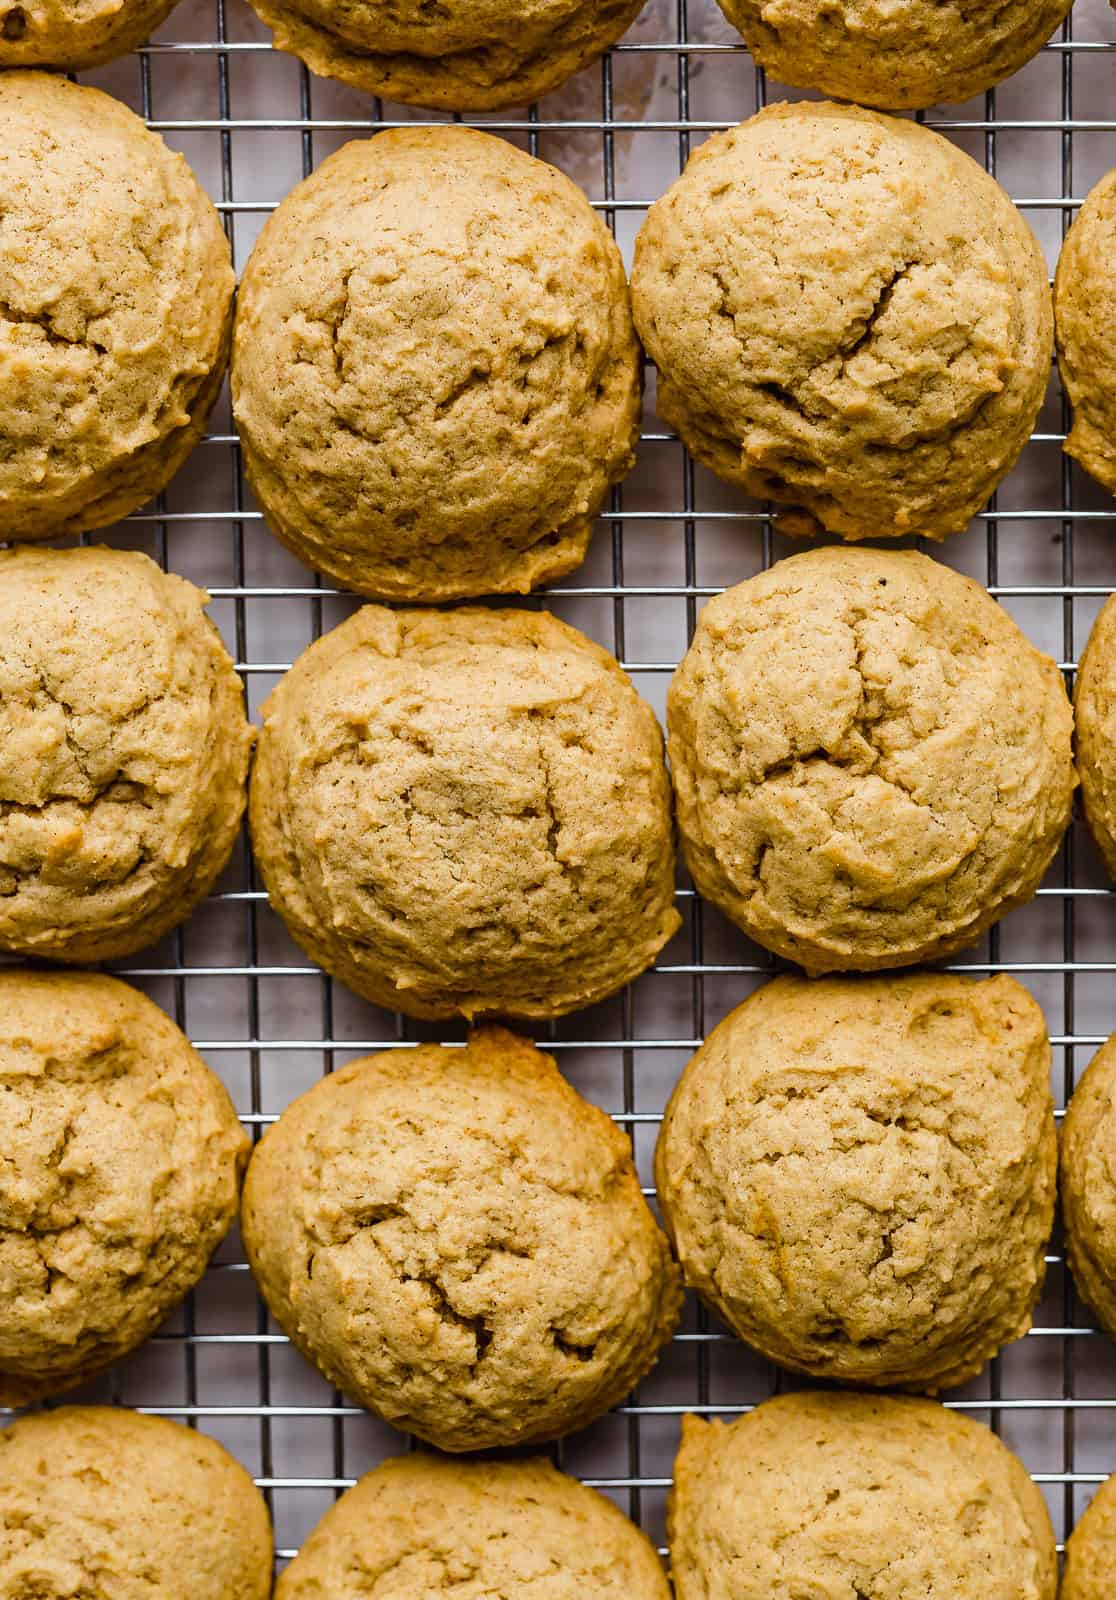 Baked pumpkin cookies on a cooling rack.